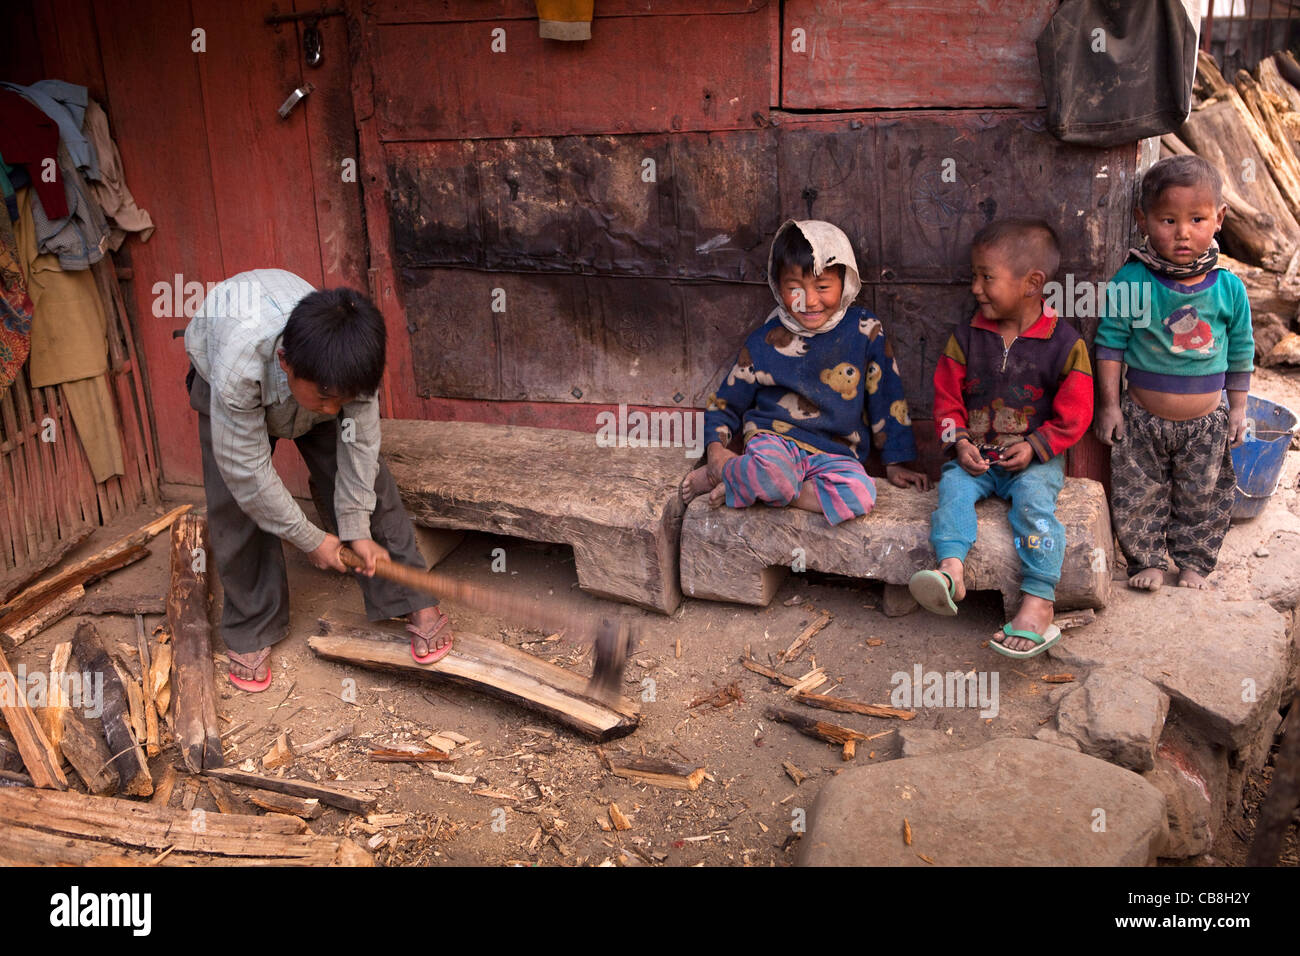 India, Nagaland, Jakhama Village, child chopping firewood with axe close to other young children - Stock Image